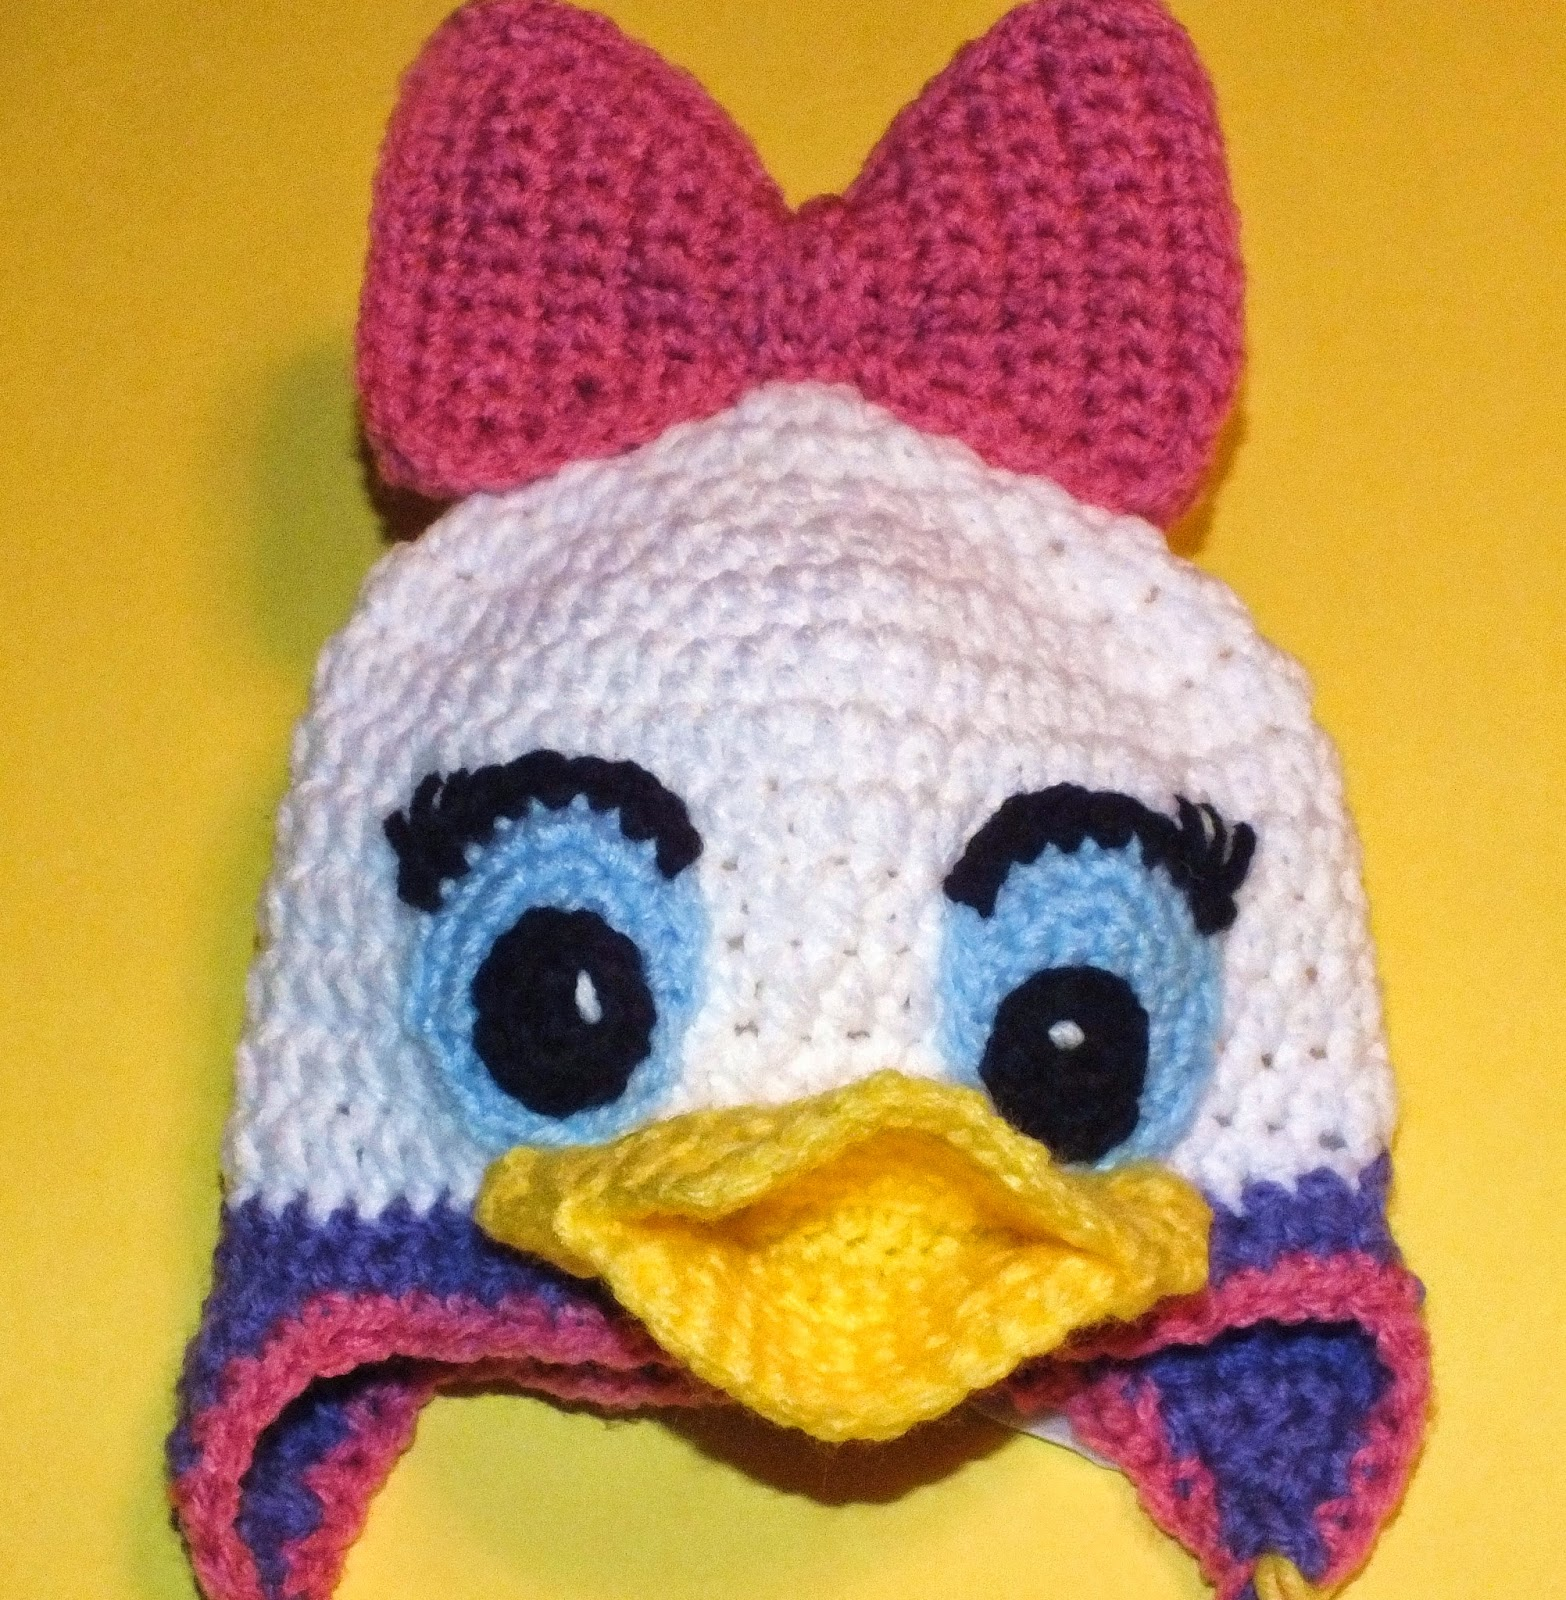 Connies spot crocheting crafting creating crochet duck crochet duck inspired hats bankloansurffo Image collections